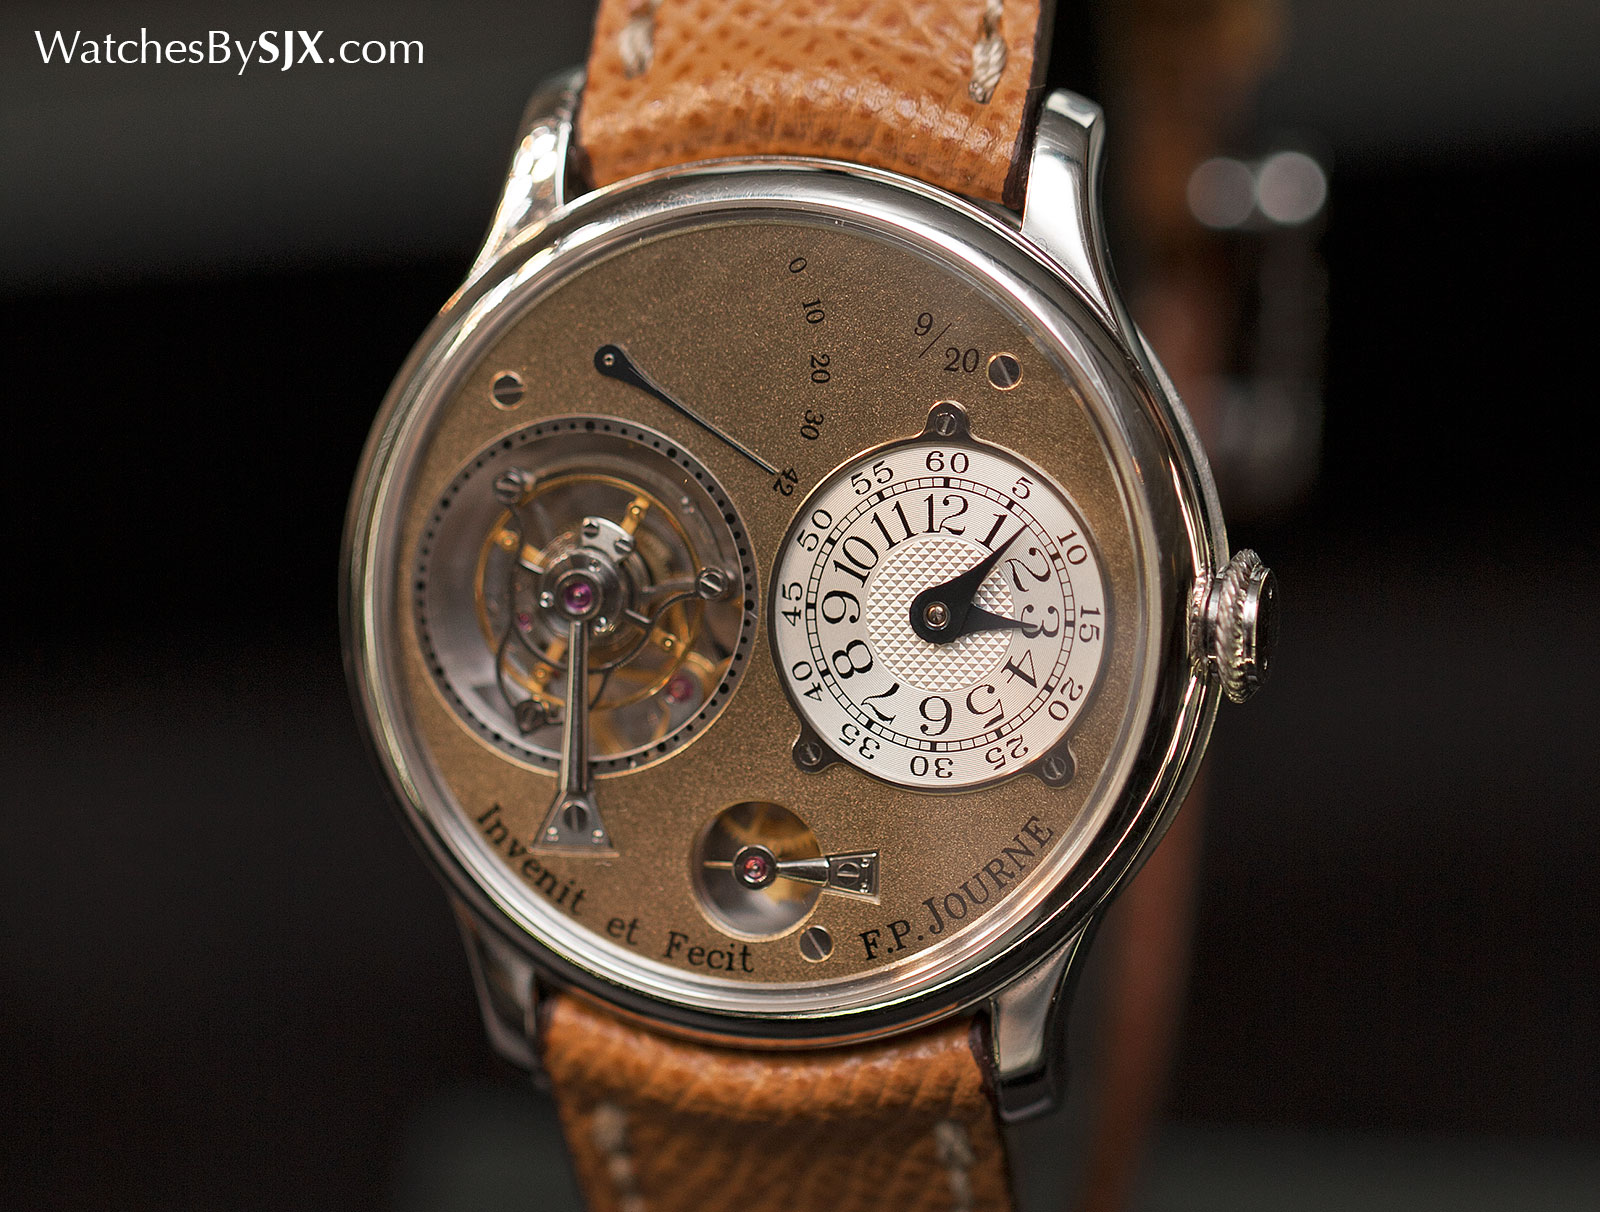 FP Journe Tourbillon Souscription 4